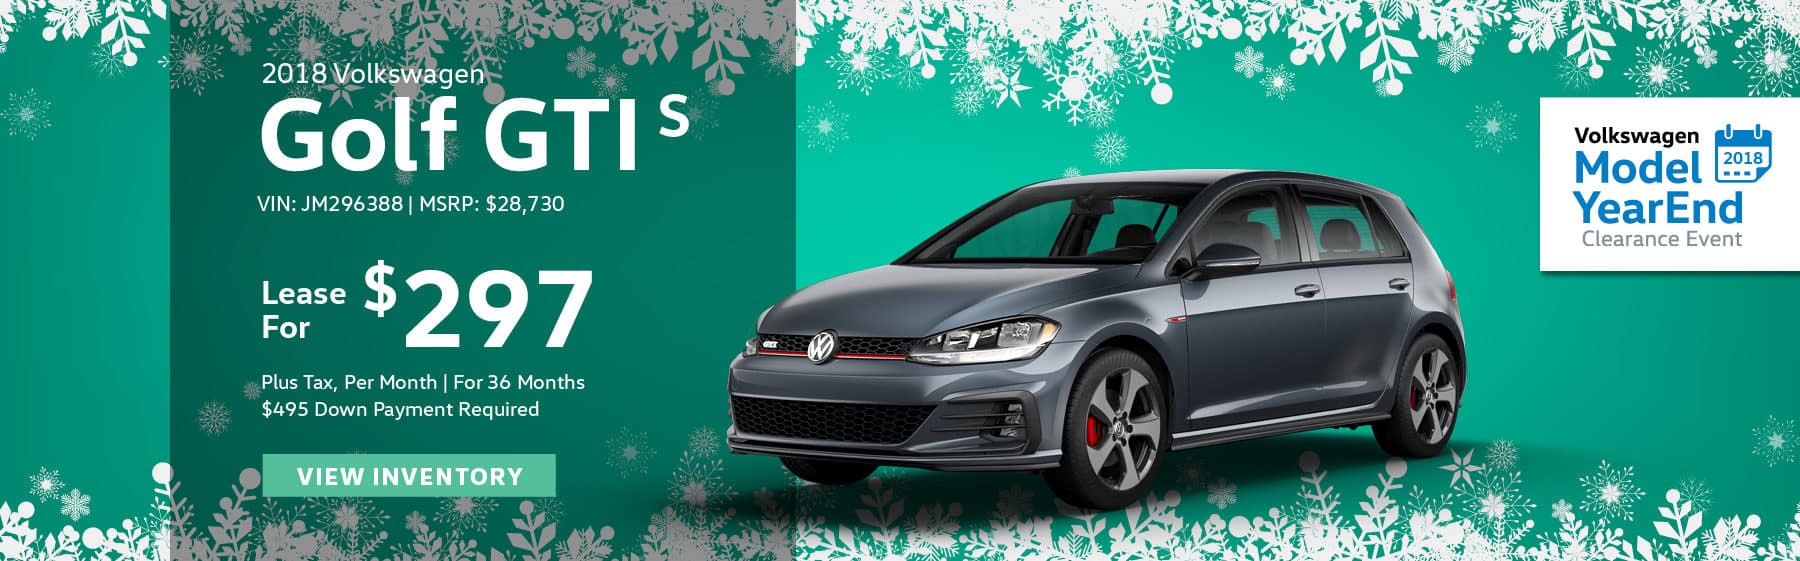 Lease the 2018 Volkswagen Golf GTI S for $297 plus tax for 36 months. $495 Down payment required.